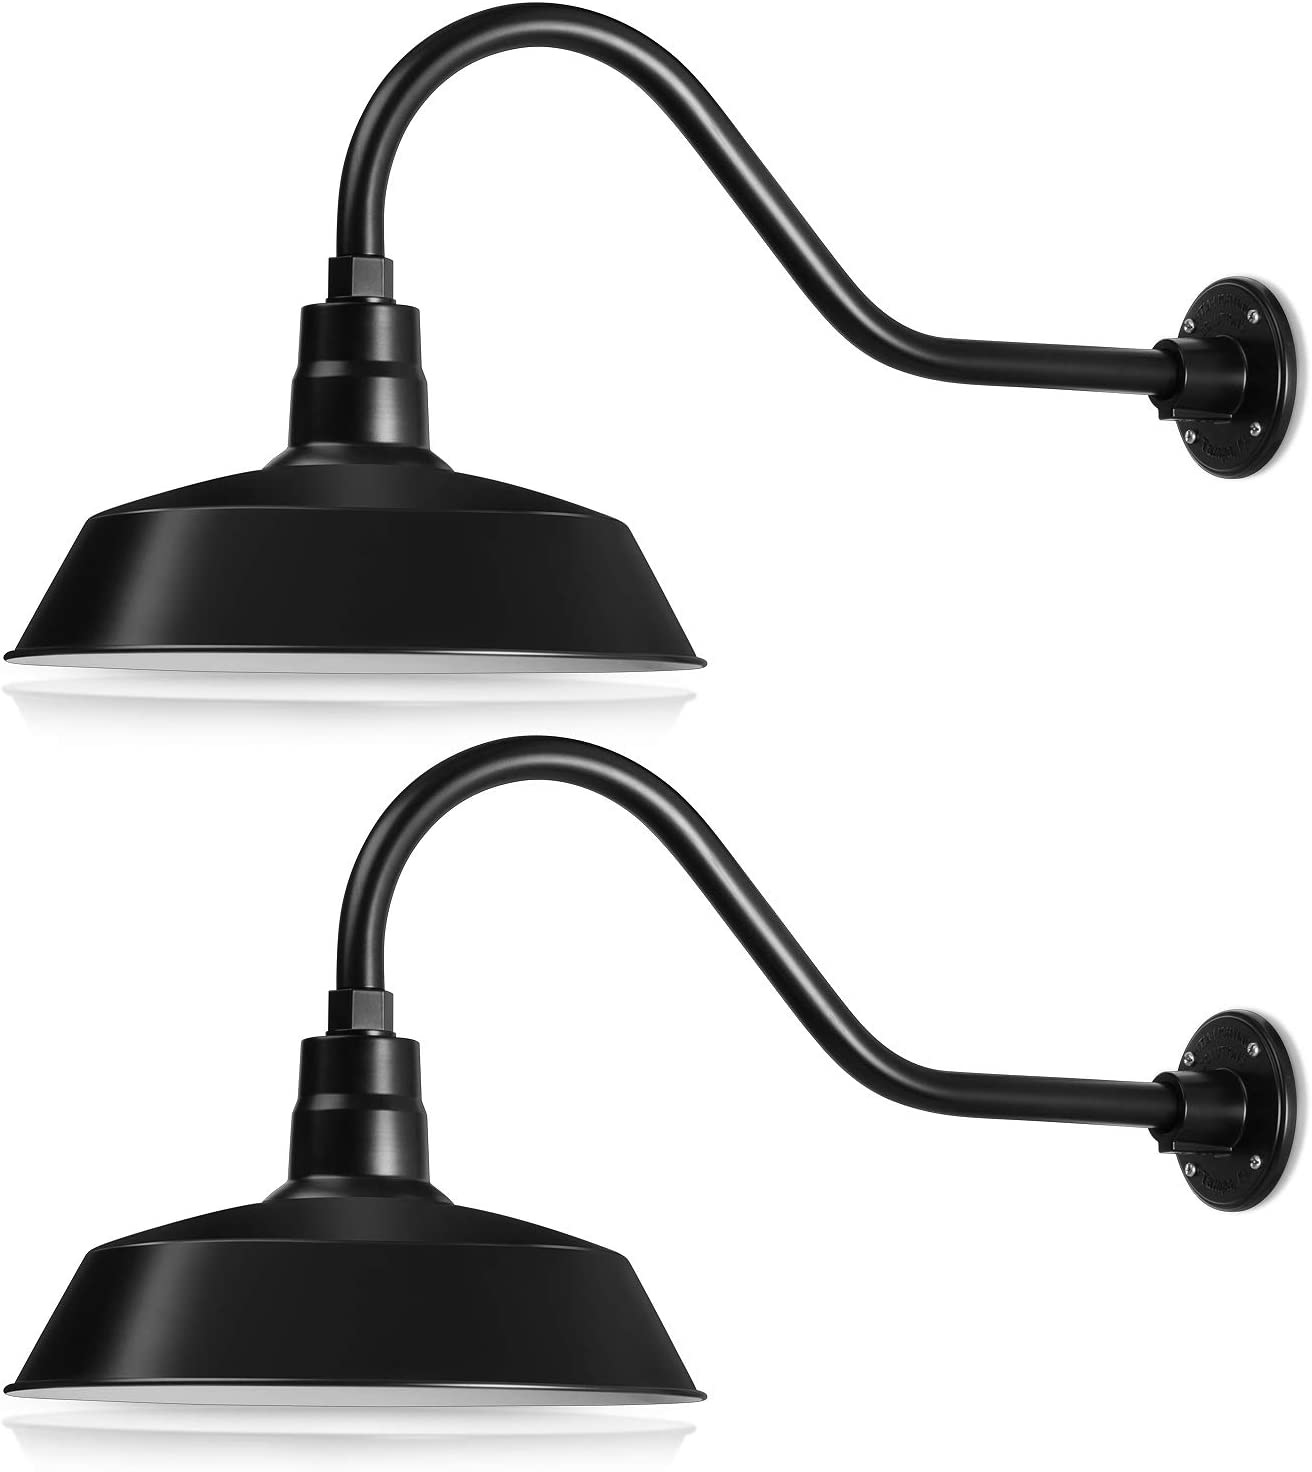 14in. Satin Black Outdoor Gooseneck Barn Light Fixture With 22in. Long Extension Arm - Wall Sconce Farmhouse, Antique Style - UL Listed - 9W 900lm A19 LED Bulb (5000K Cool White) - 2-Pack